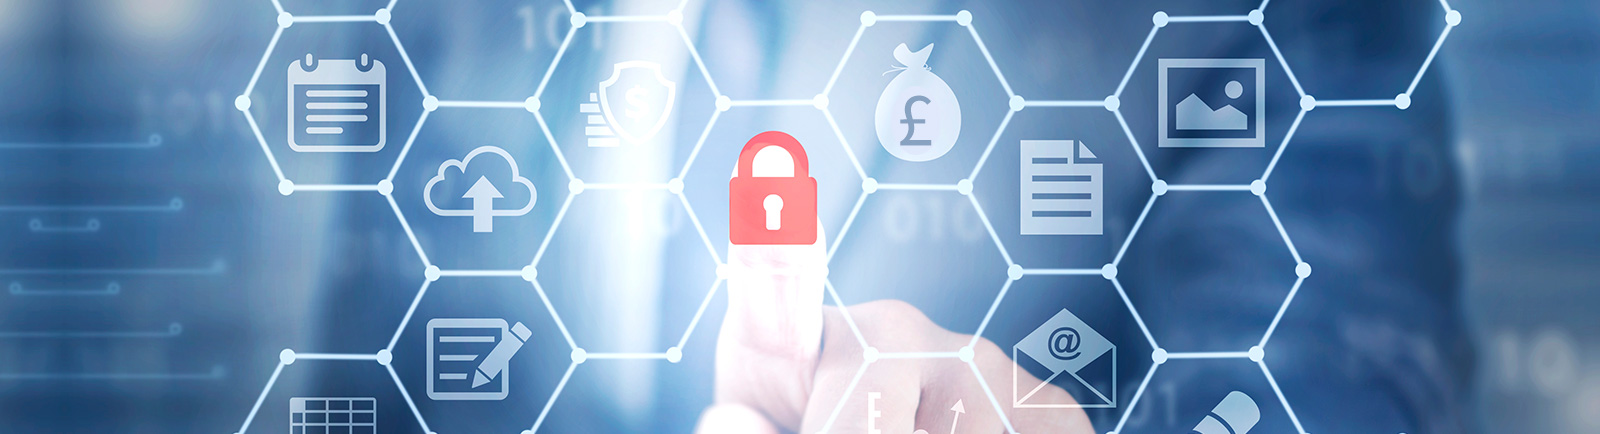 firewall security Hampshire